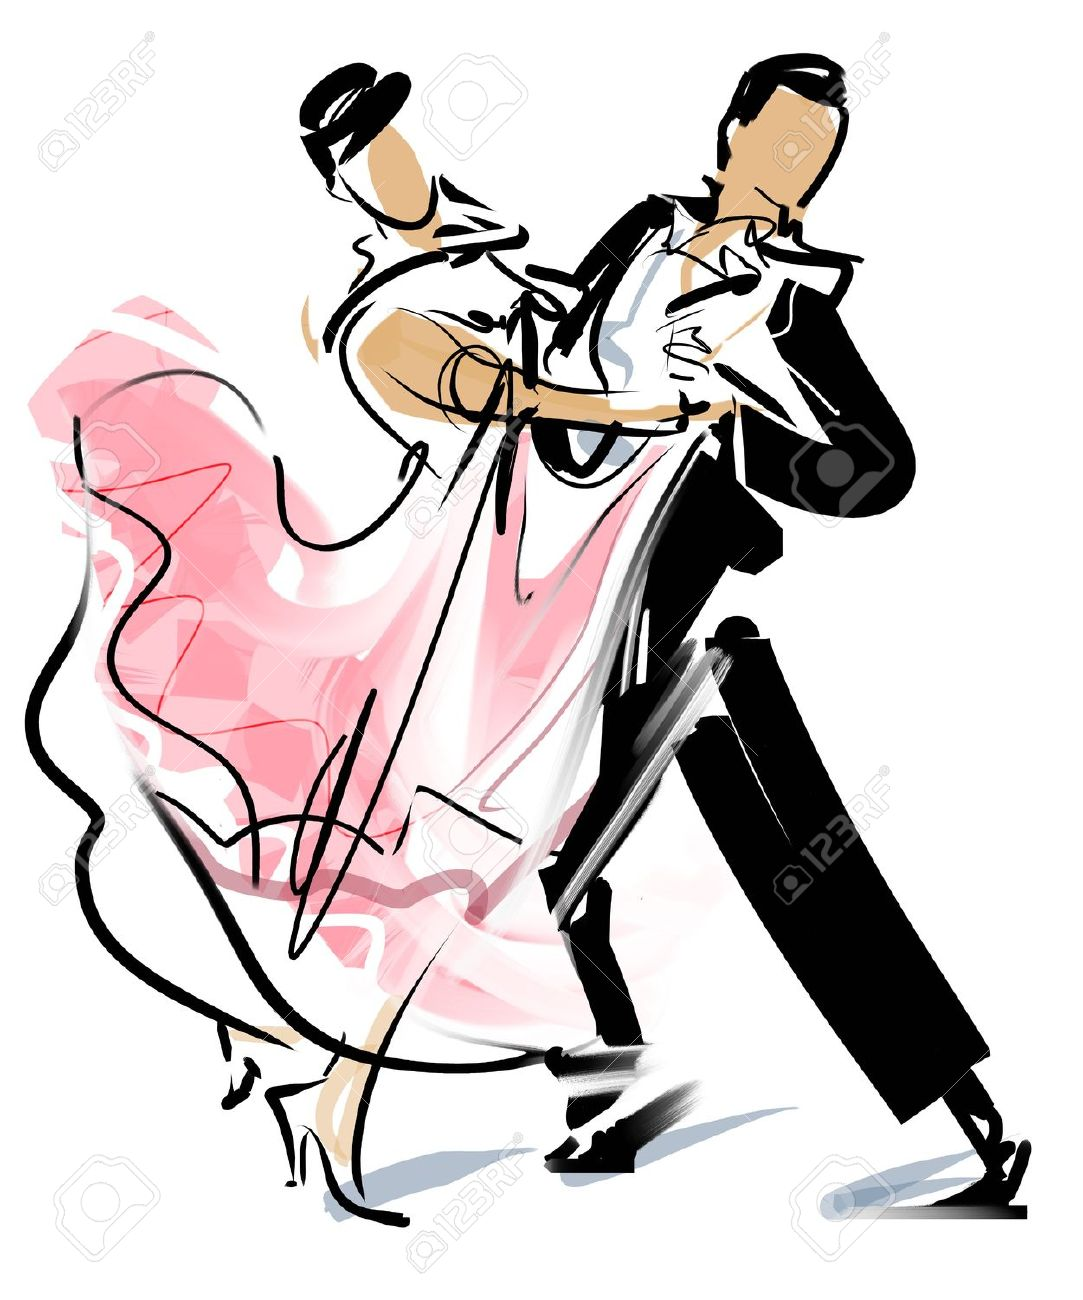 1083x1300 21,027 Couple Dancing Stock Illustrations, Cliparts And Royalty